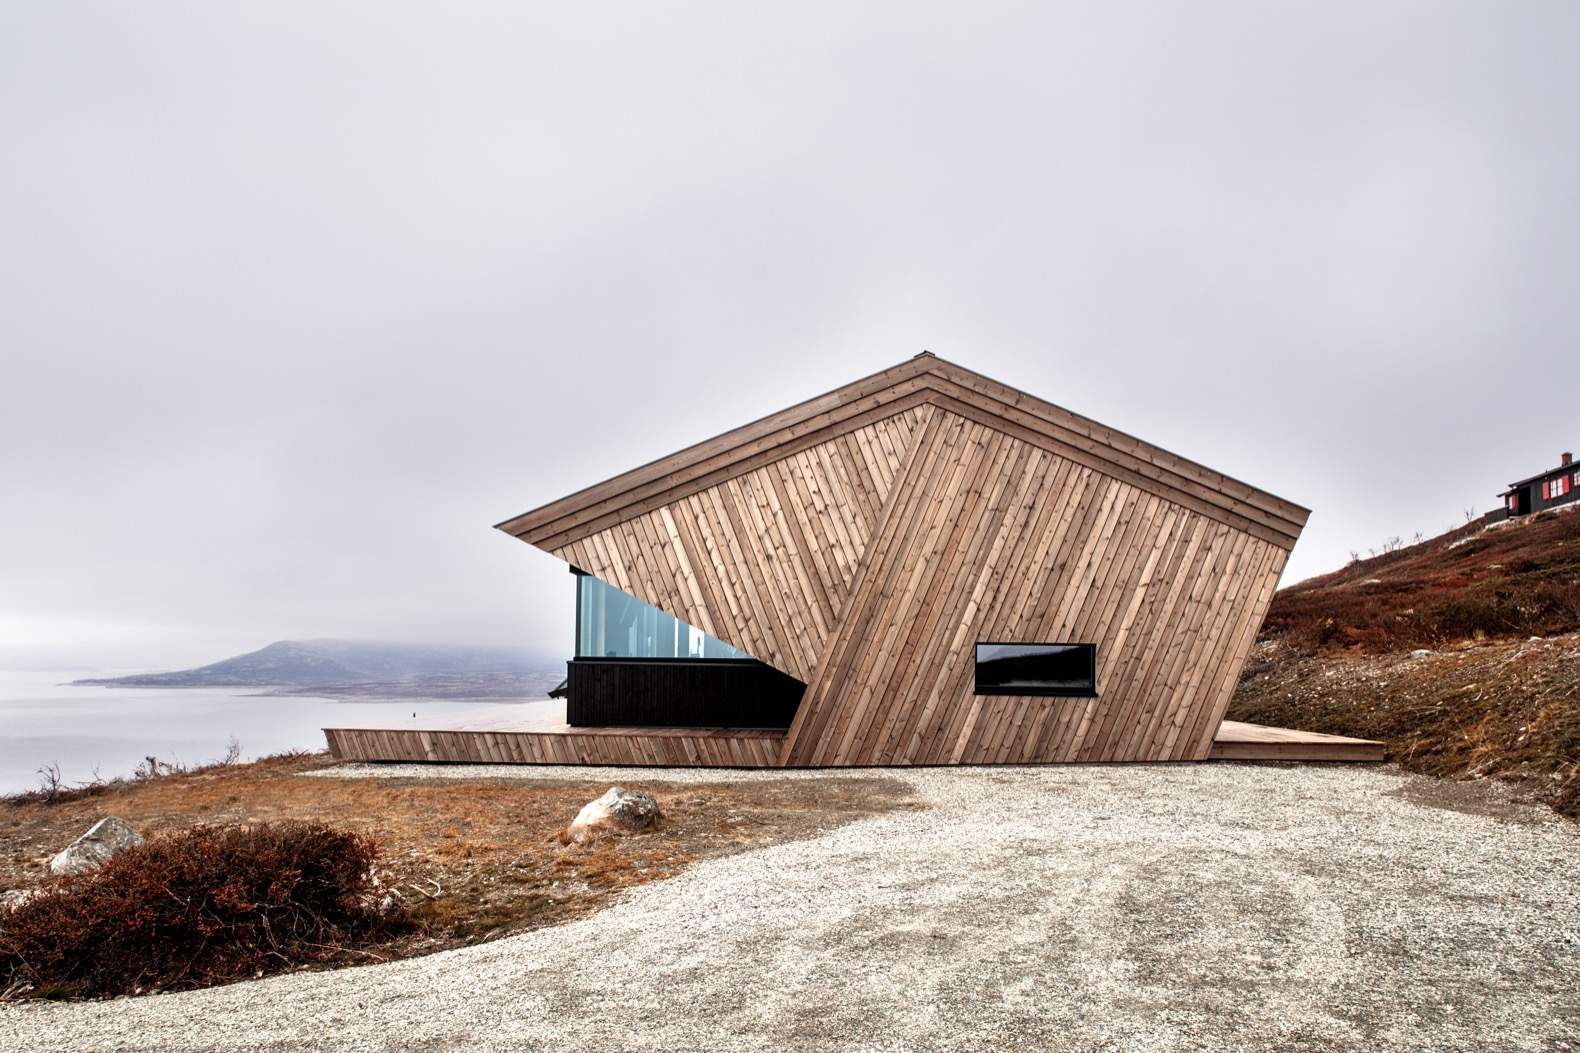 Sculptural wood cabin is an alpine retreat with magnificent views